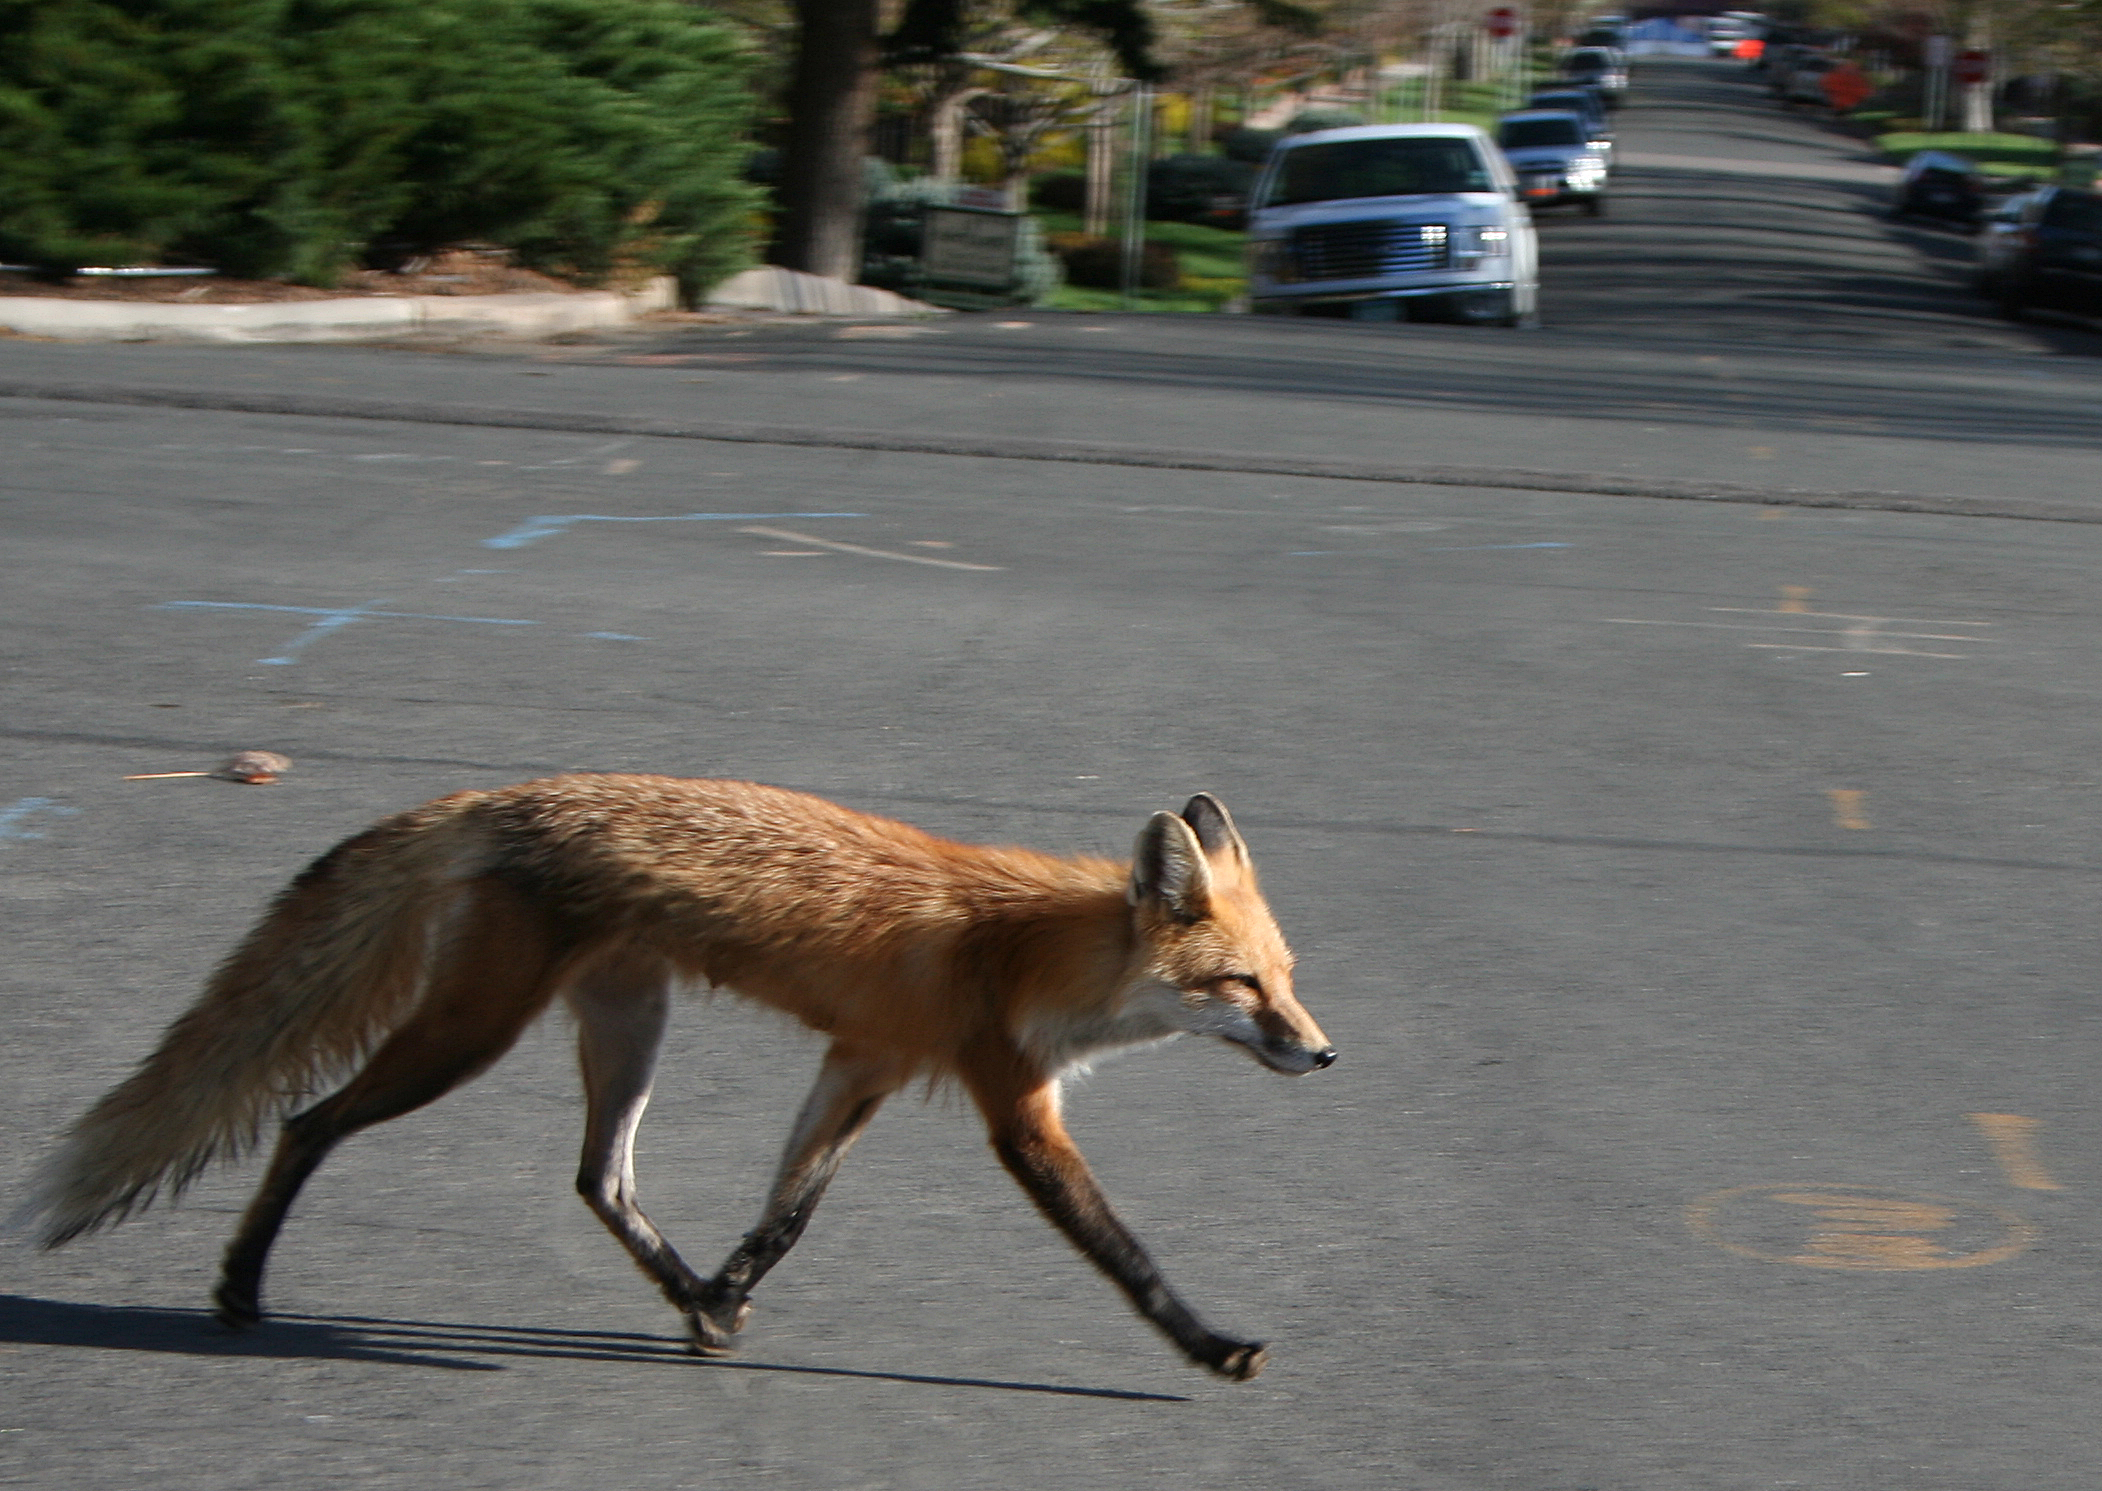 A Red fox crossing a street in Portugal. Photo taken on April 24, 2010.